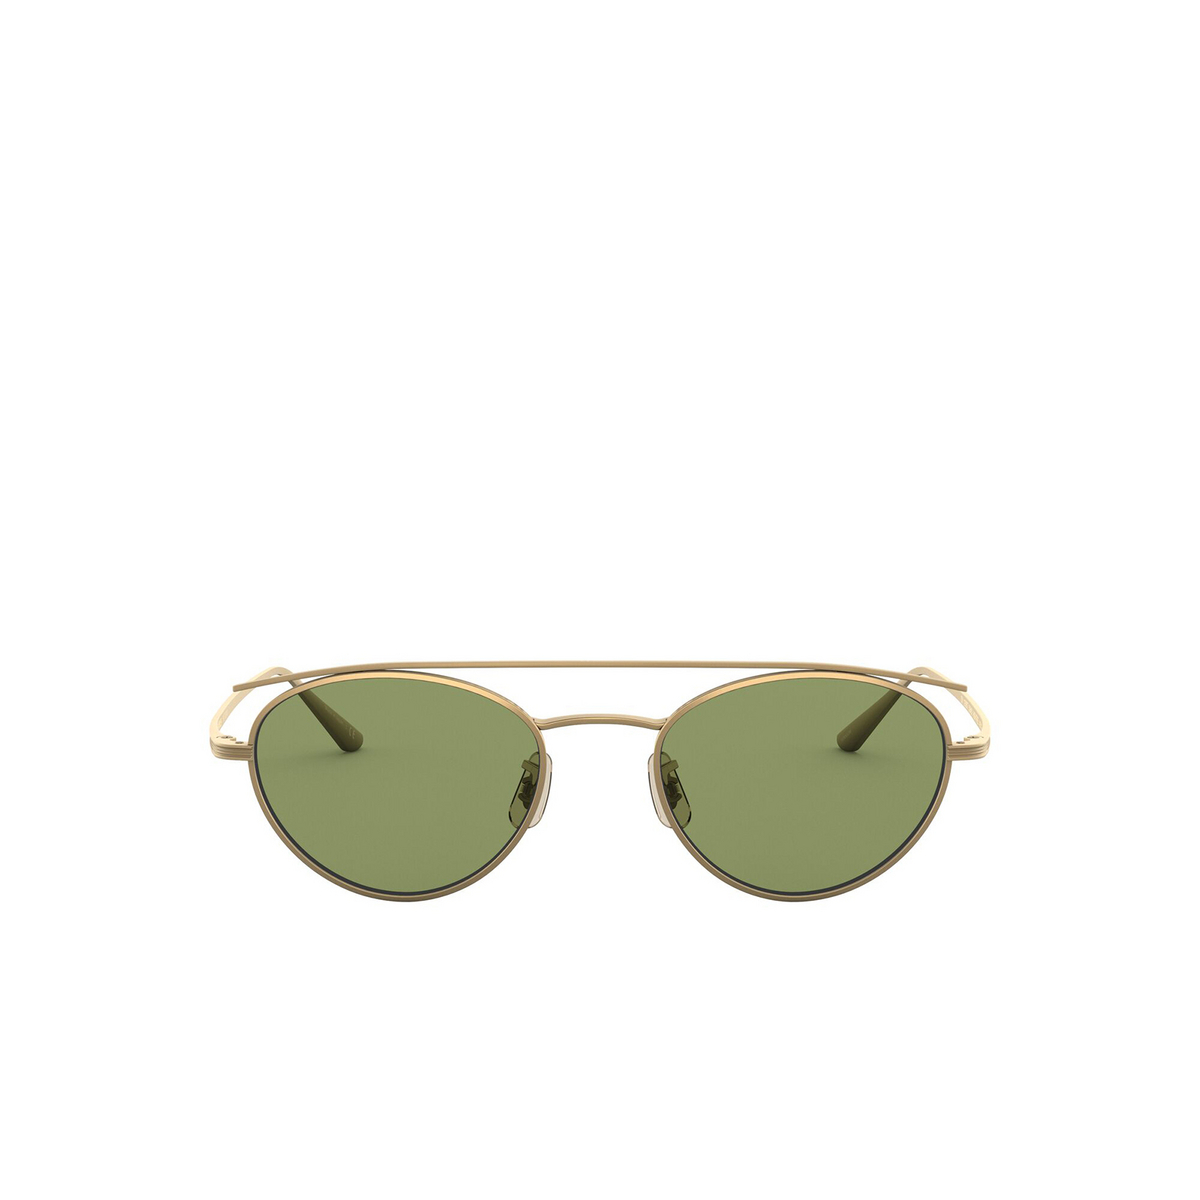 Oliver Peoples® Oval Sunglasses: Hightree OV1258ST color Antique Gold 528452 - front view.